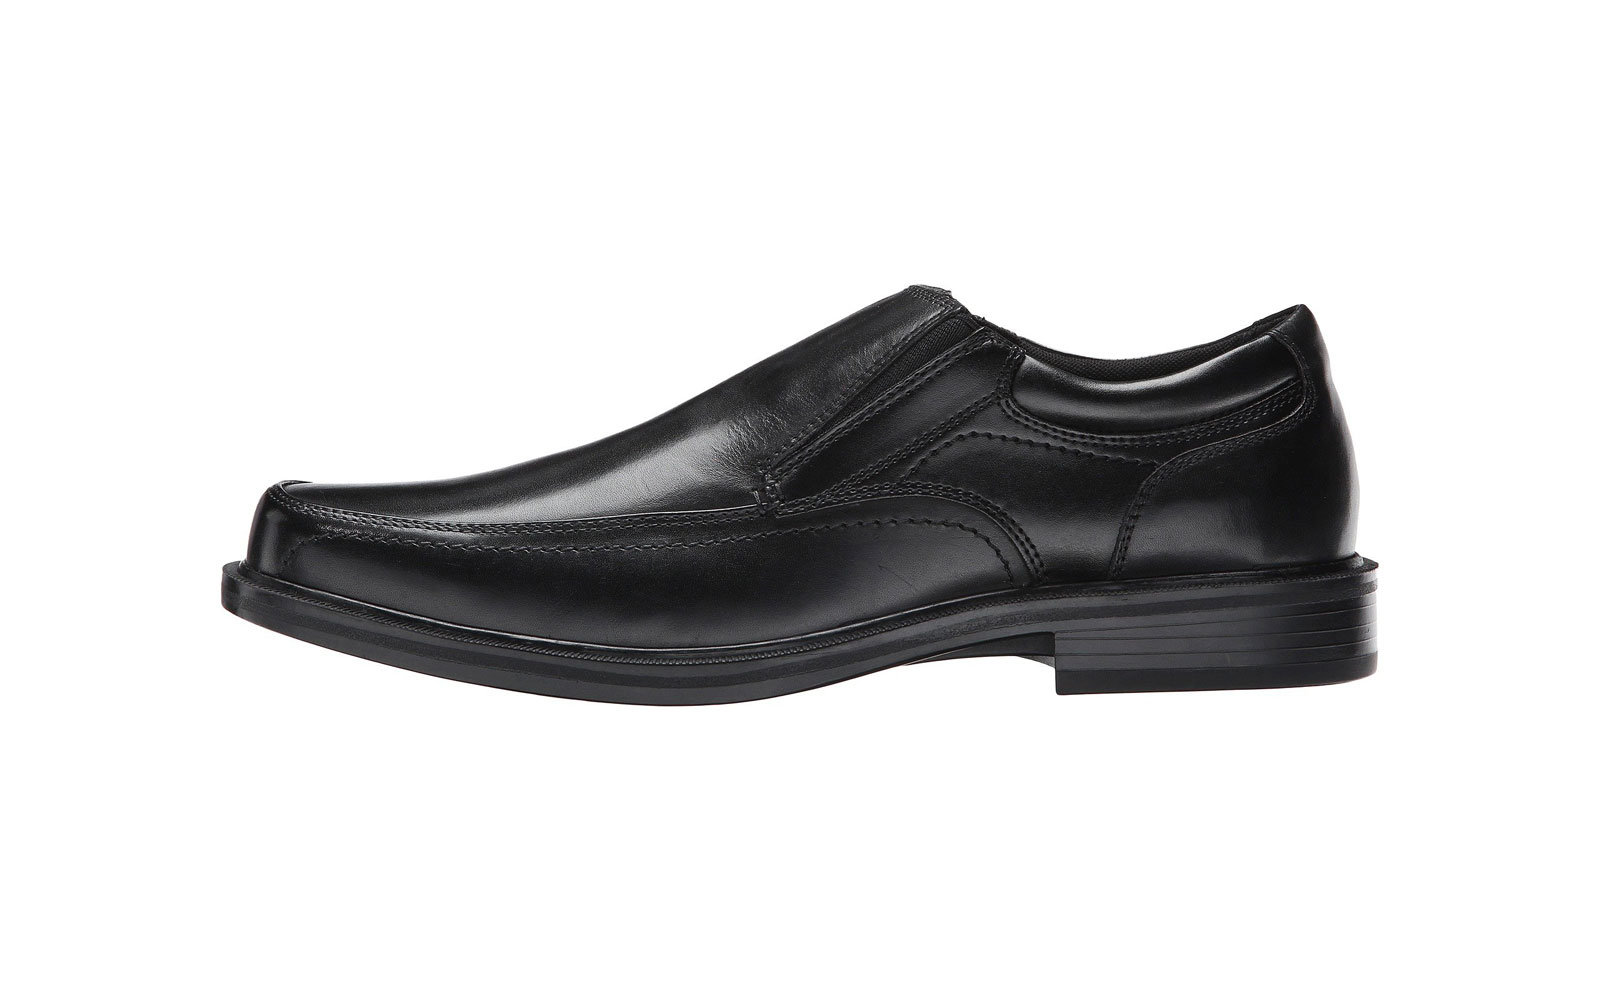 Dockers Edson Slip-On Dress Shoe